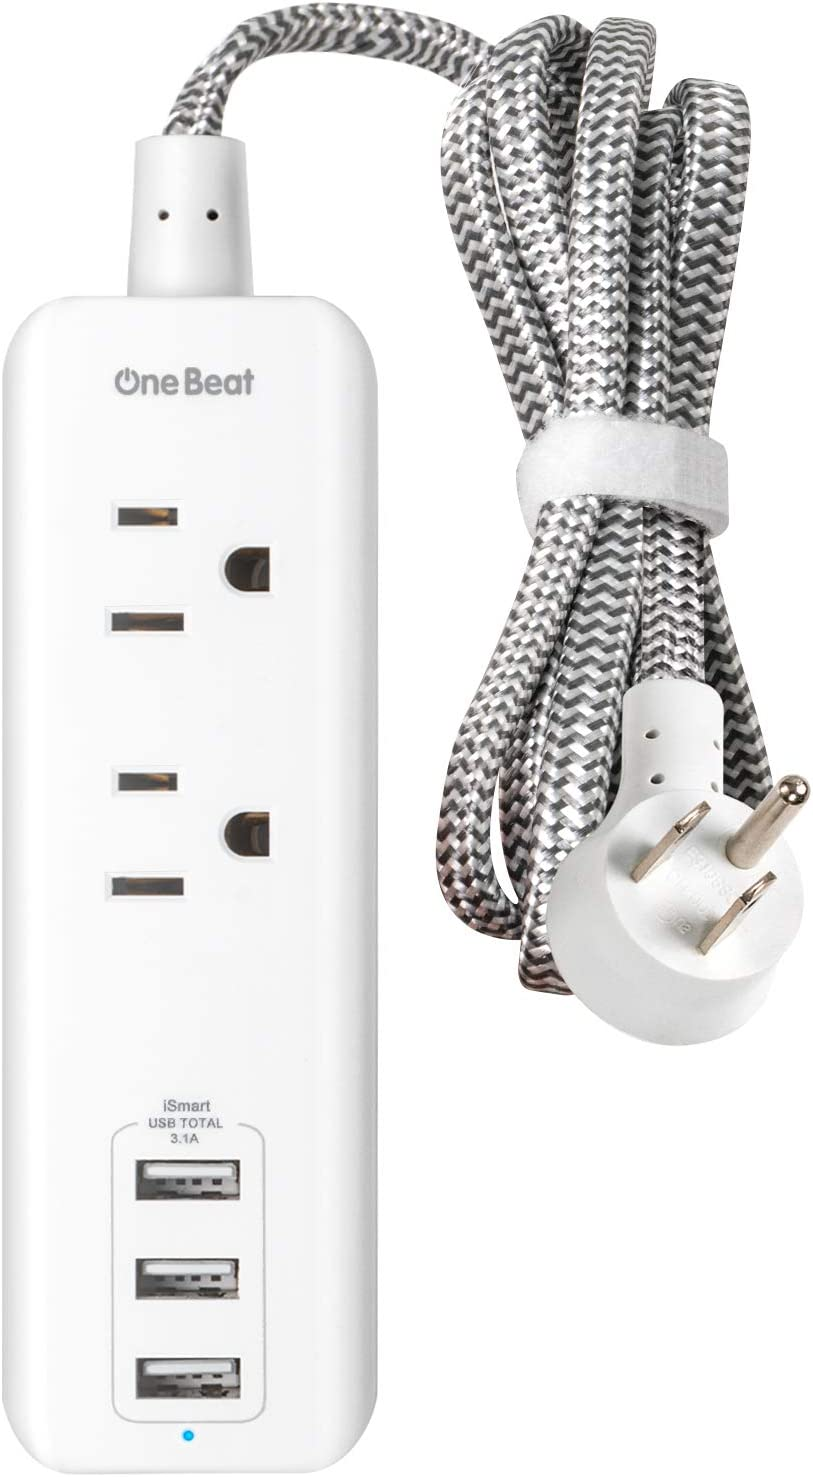 Power Strip with 2 Outlets and 3 USB Charging Ports(3.1A, 15W), Desktop Charging Station with 5 ft Braided Extension Cord, Flat Plug Travel Power Strip for Hotel, Cruise Ship, Home and Office, White